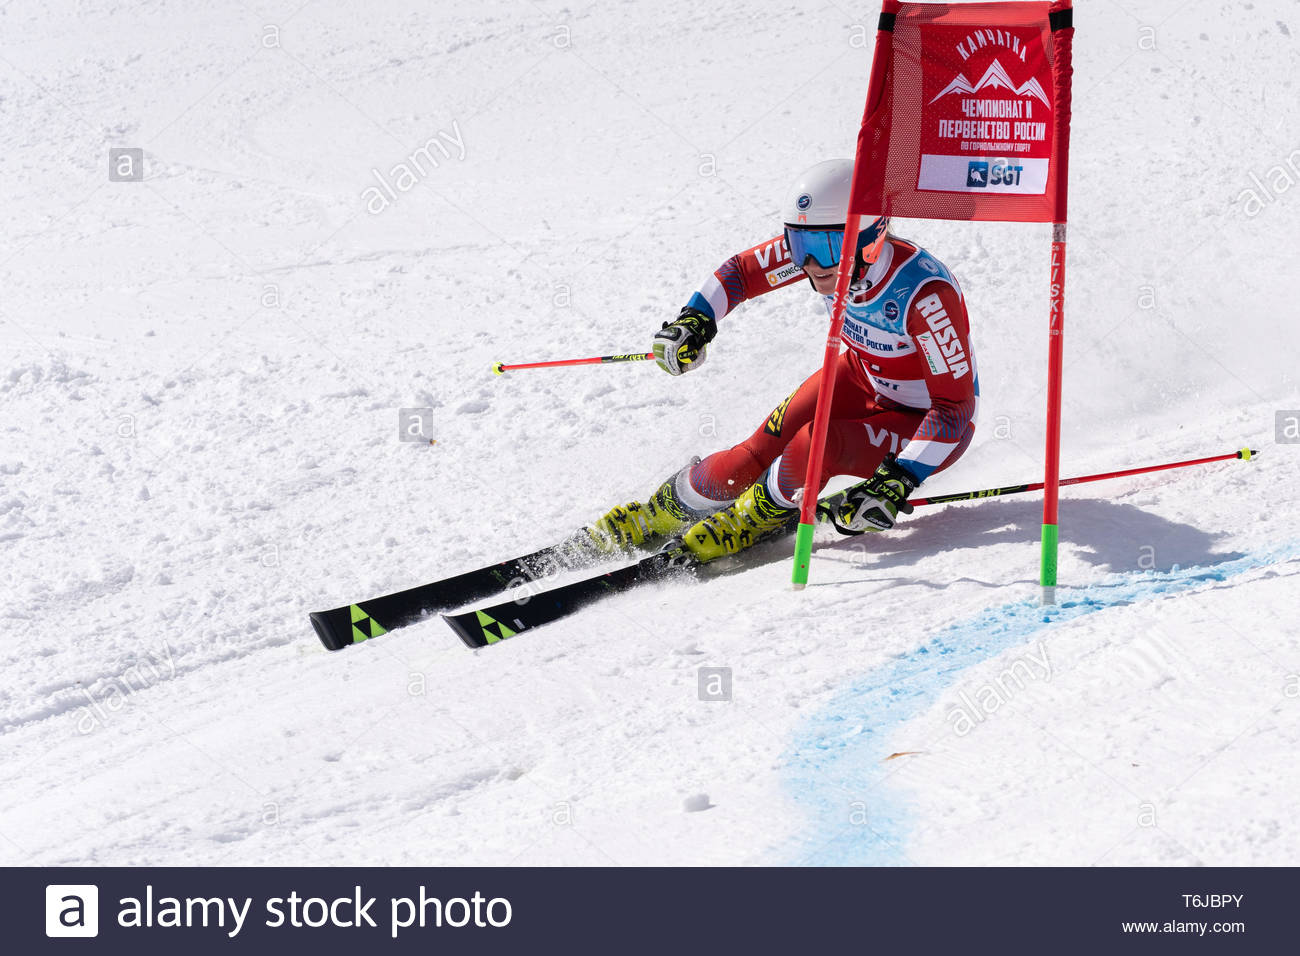 KAMCHATKA PENINSULA, RUSSIAN FEDERATION - APRIL 1, 2019: Mountain skier Abdulkayumova Rinata (Kamchatka) skiing down snowy mountain slope. Russian Wom - Stock Image